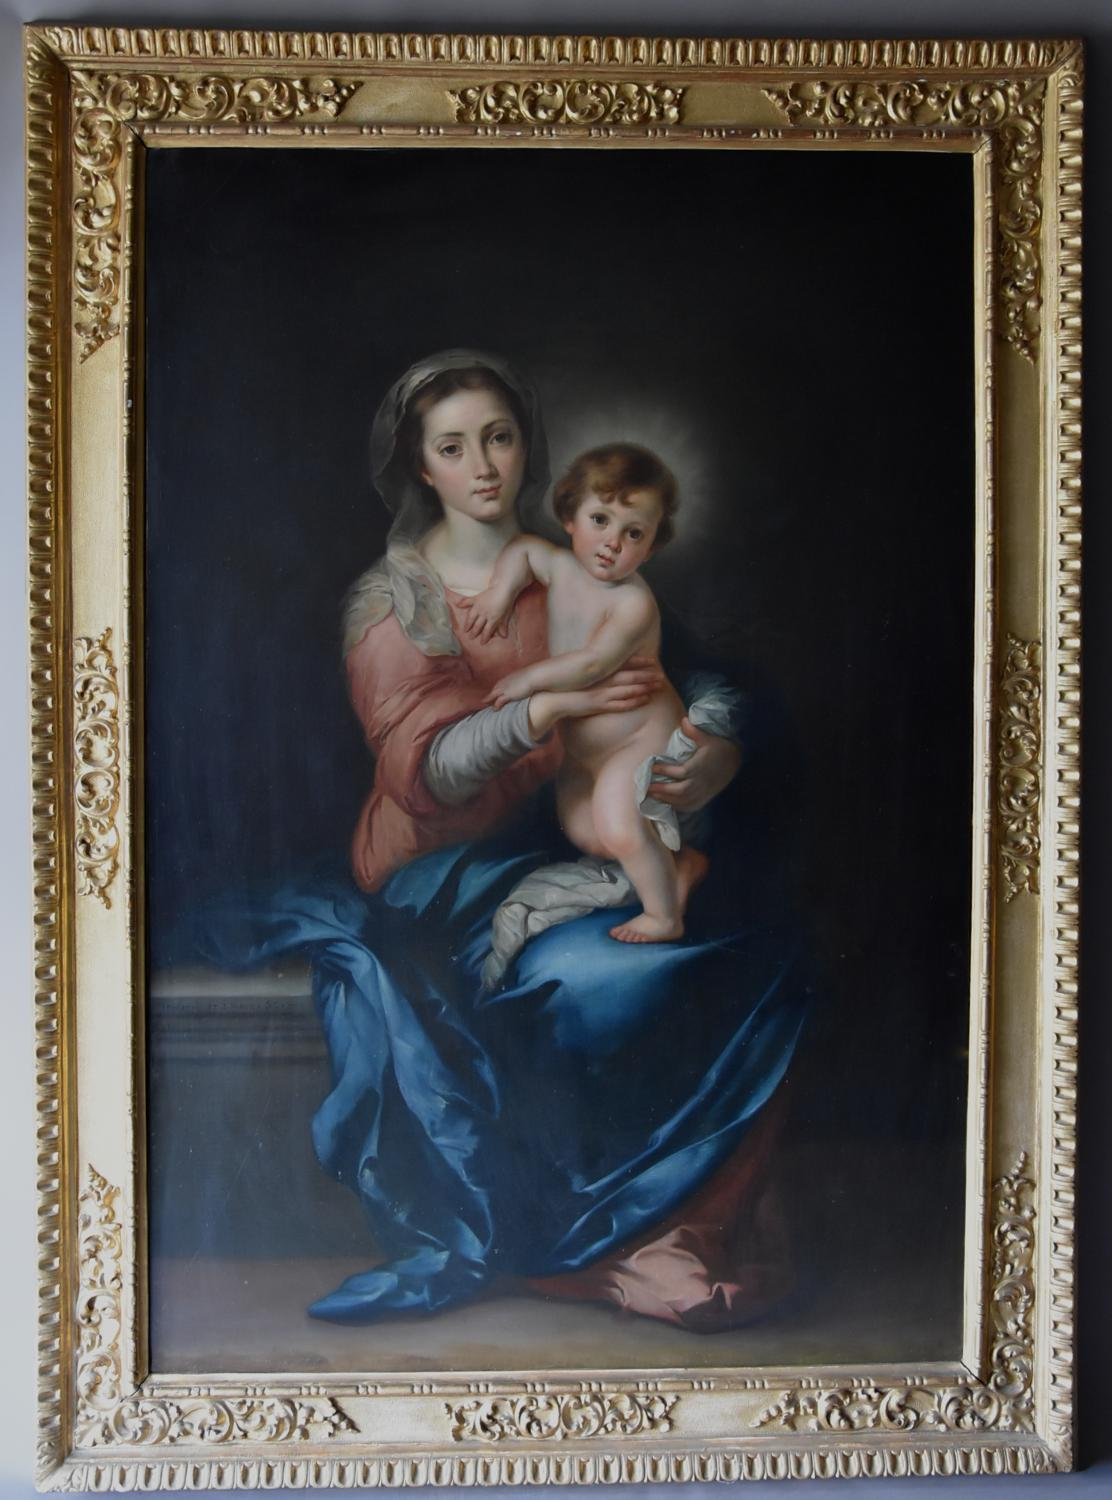 Large 19thc oil painting of 'The Madonna & Child' by Luigi Pompignoli